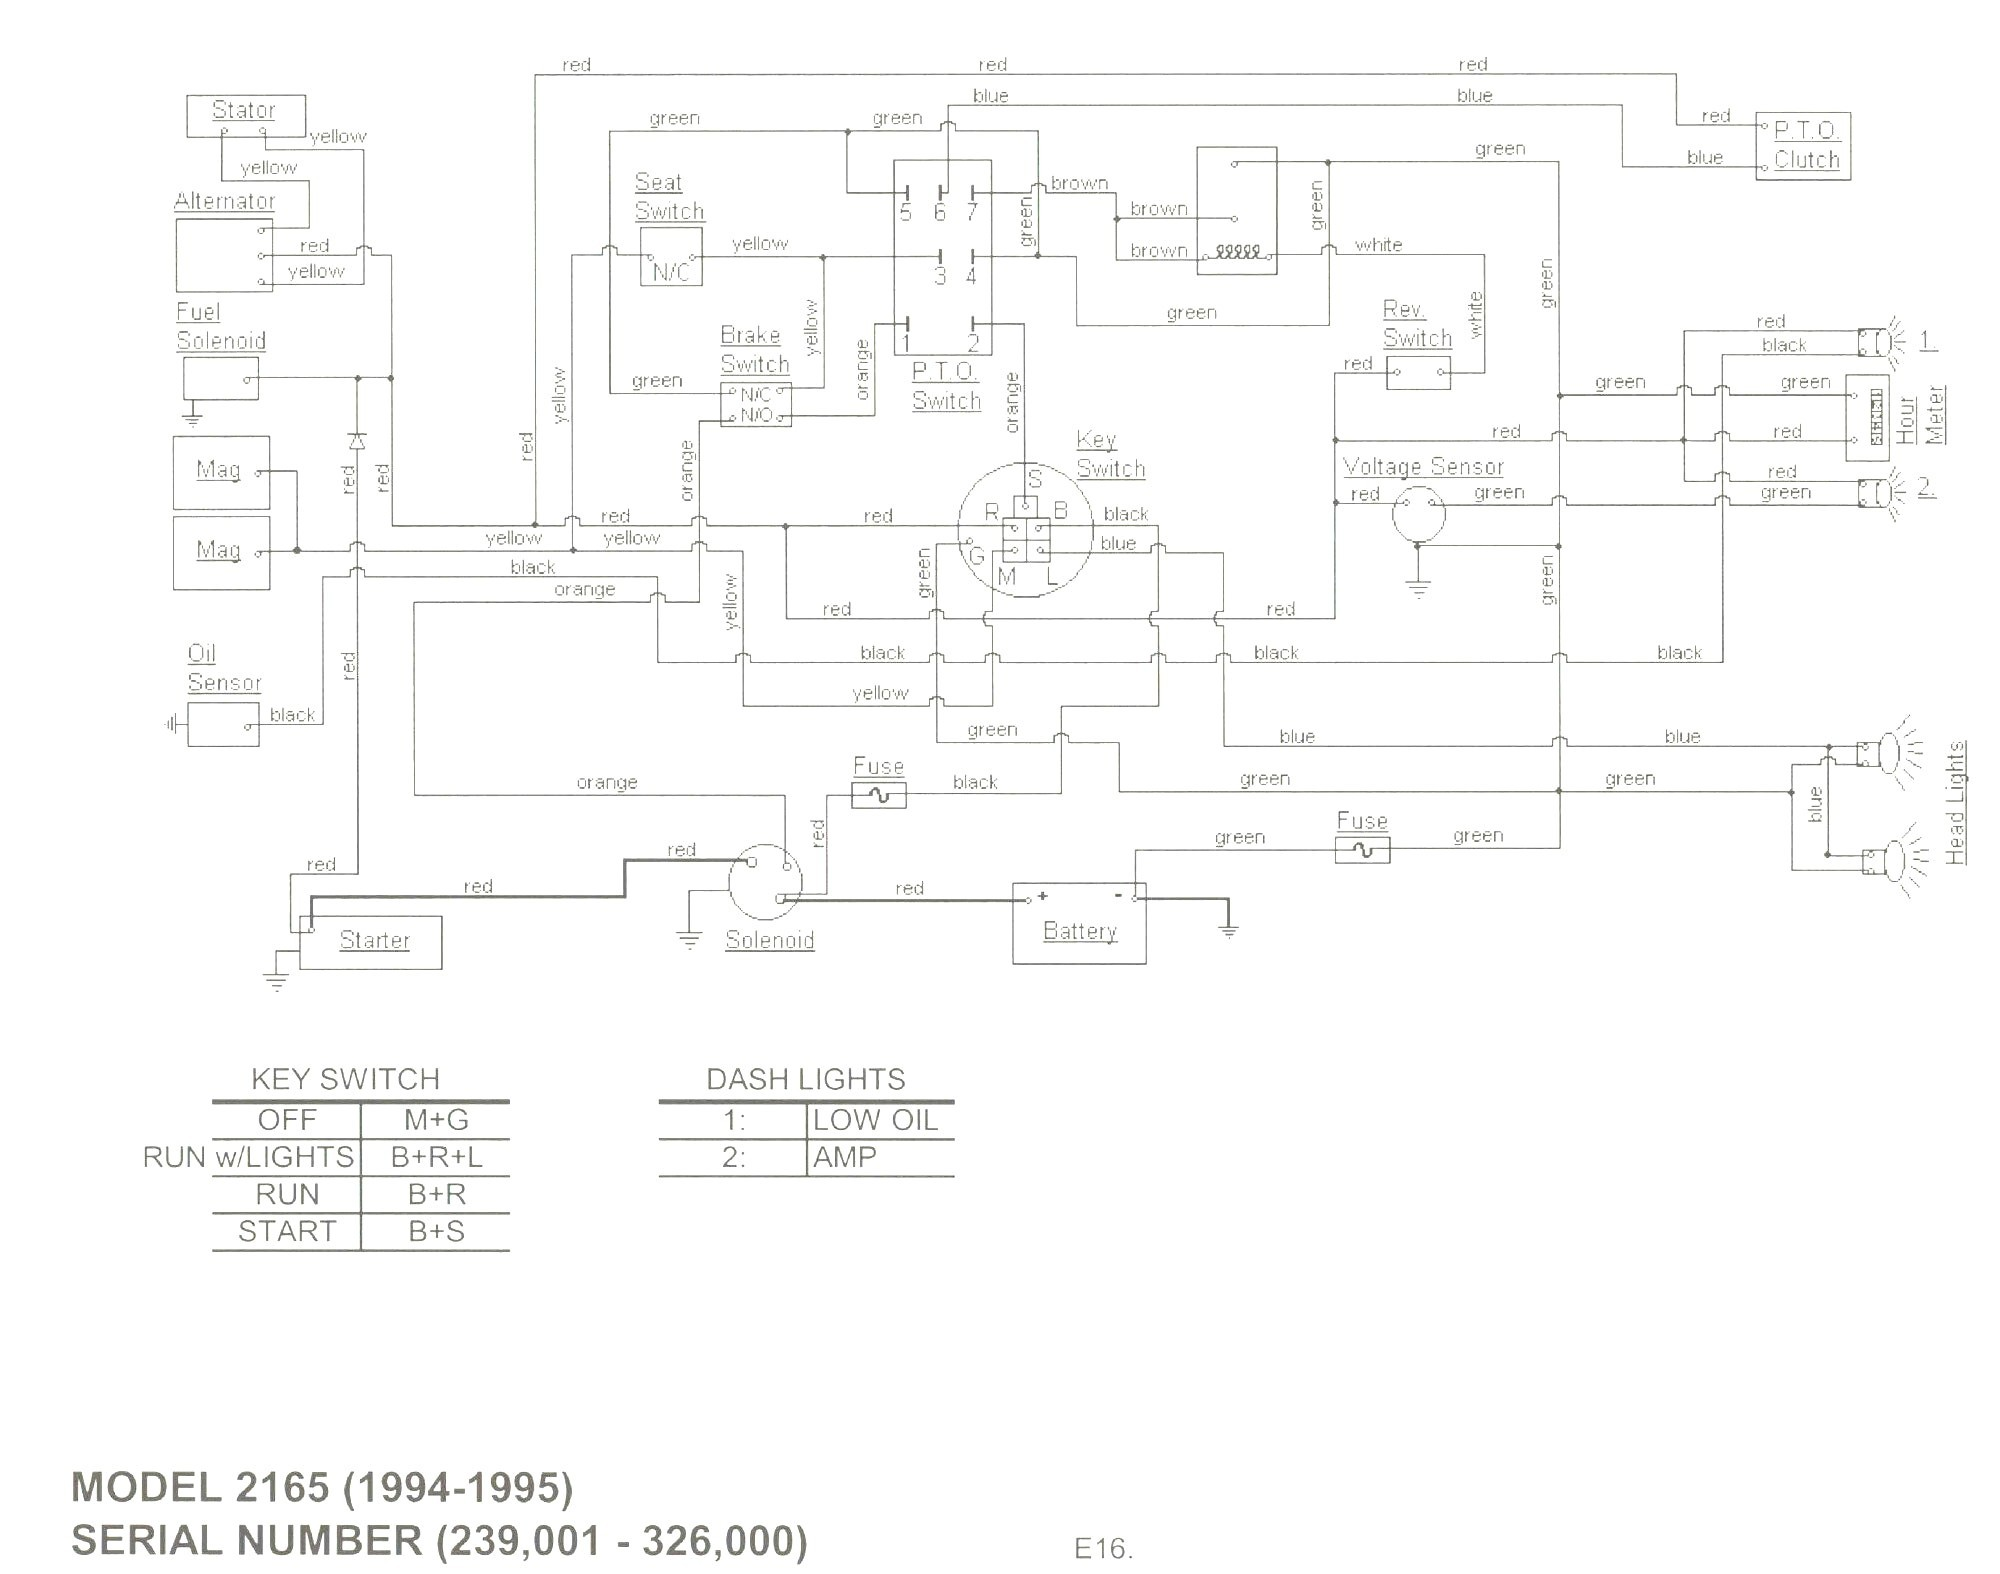 hight resolution of cub cadet wiring diagram beautiful cub cadet troubleshooting help image collections free